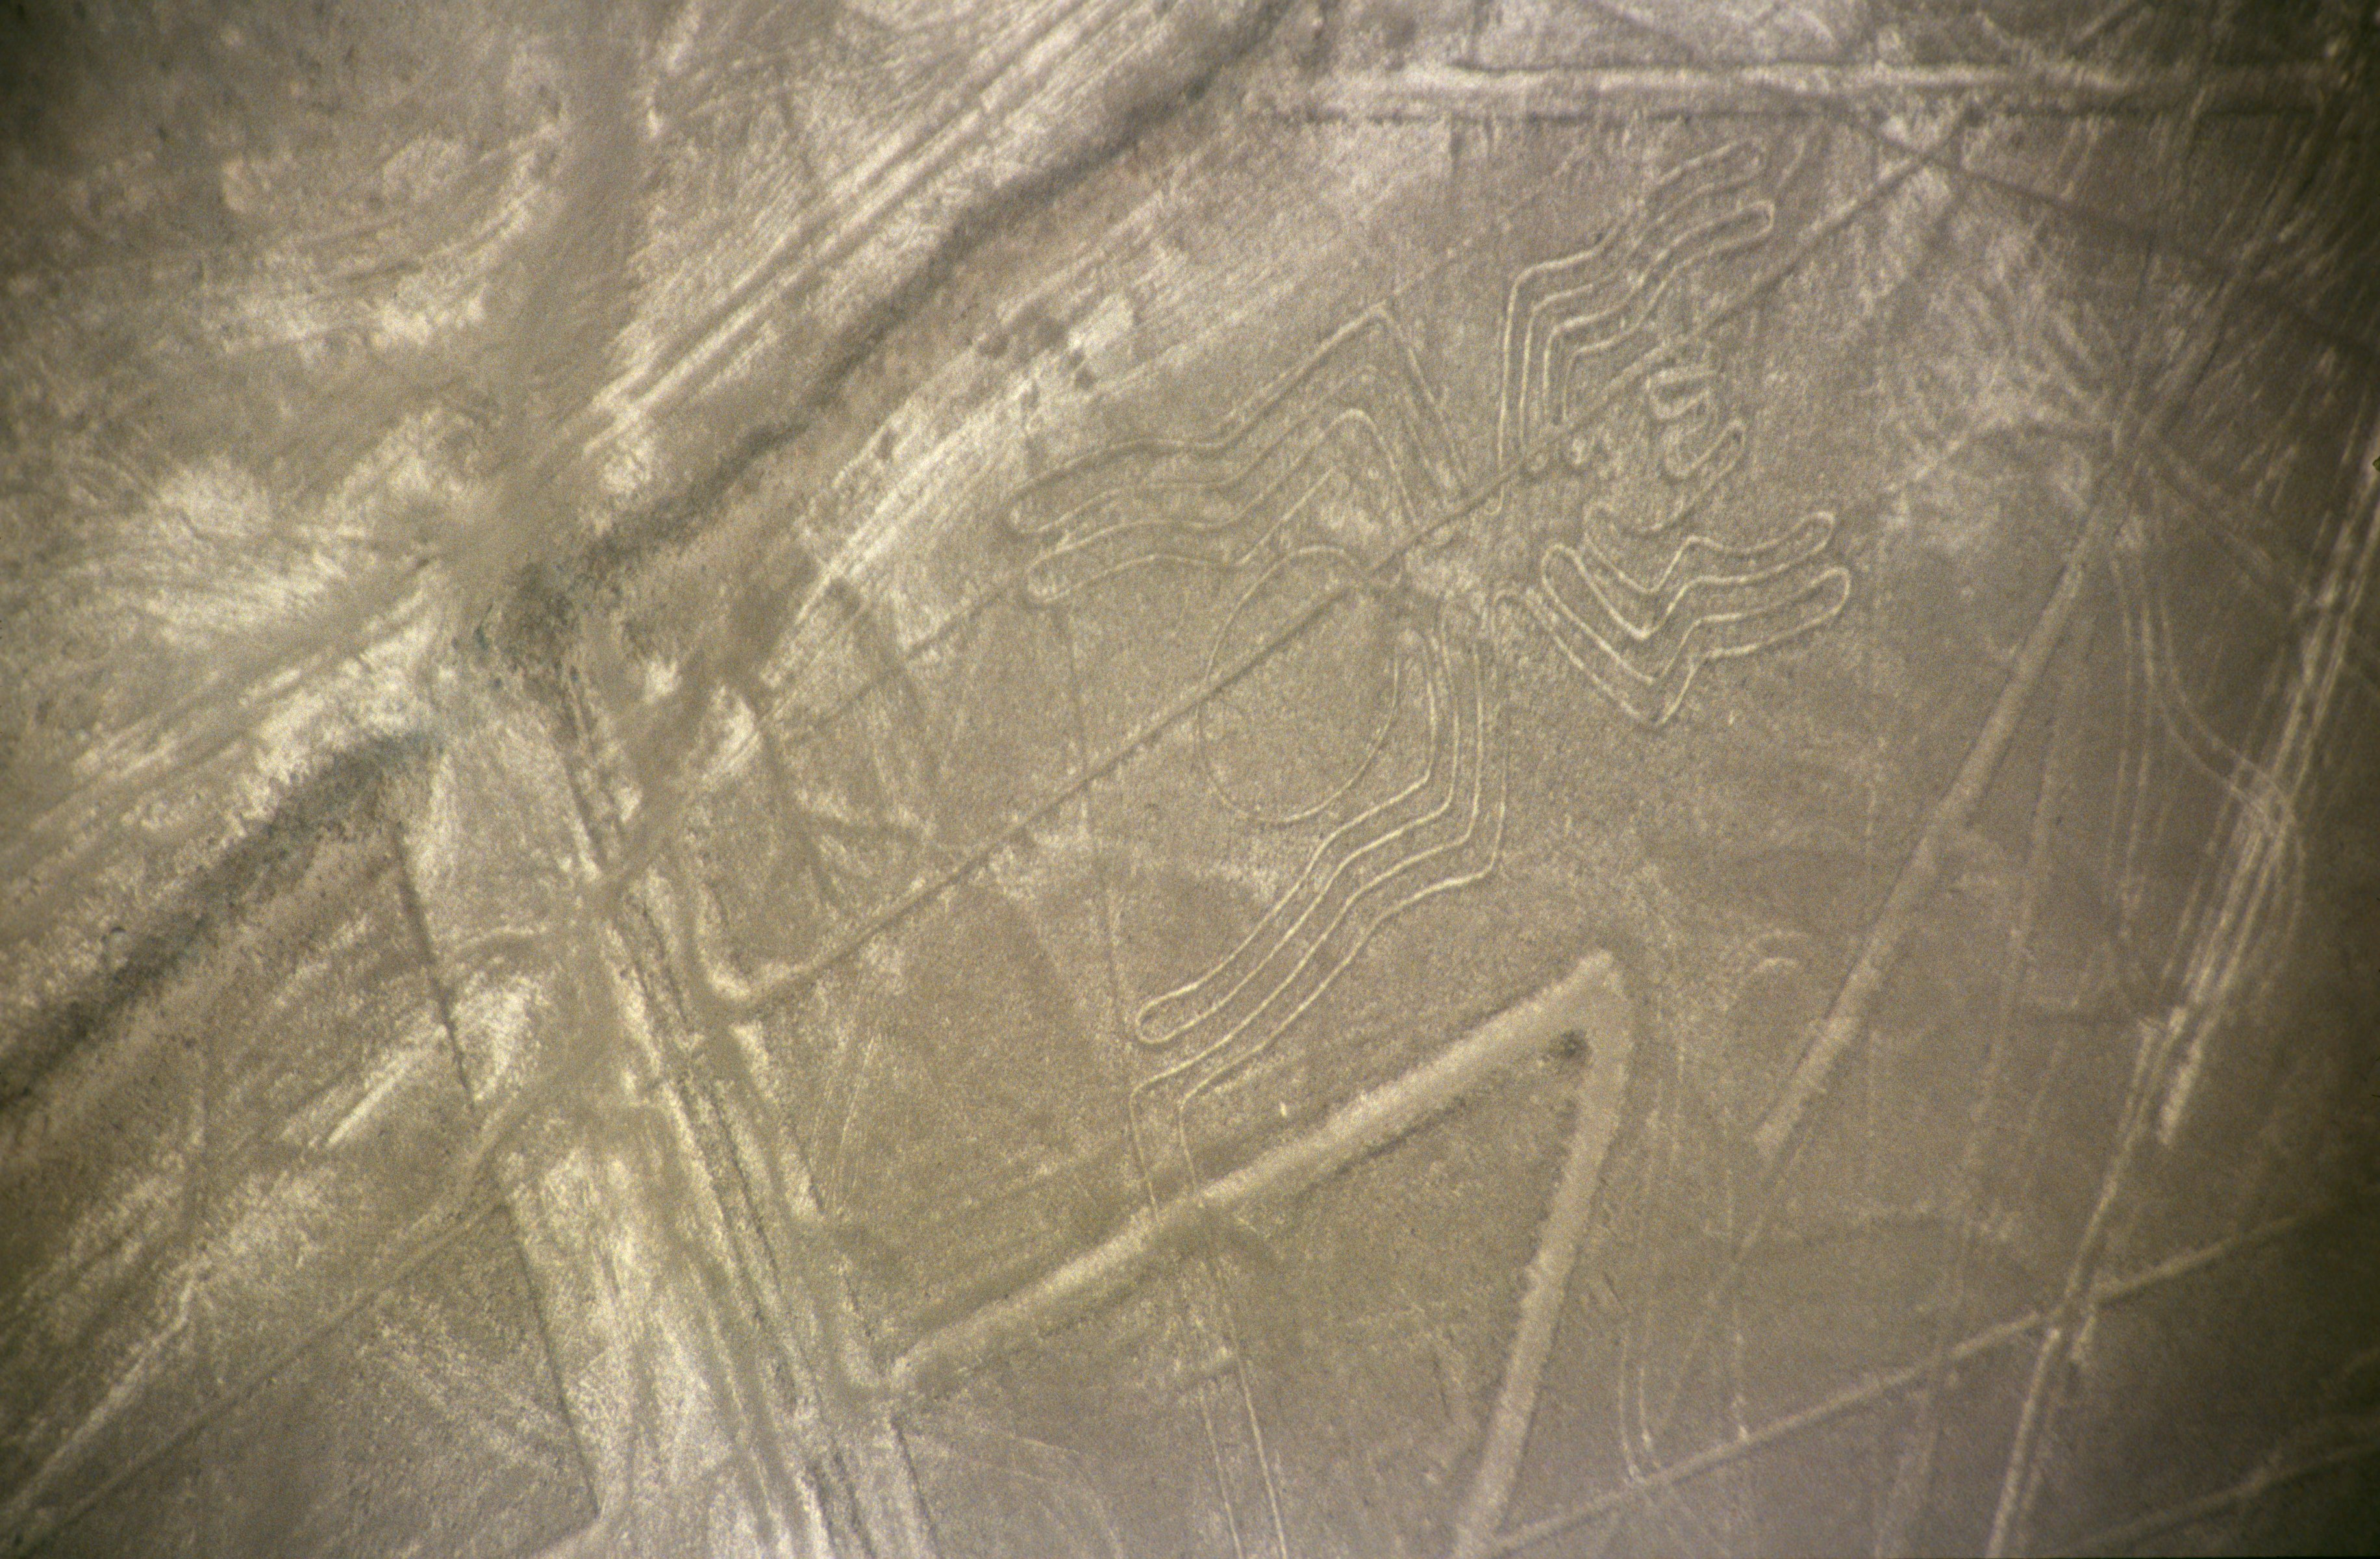 a summary of the nazca art More than 5,000 geoglyphs—prehistoric works of art placed on or worked into the landscape—have been recorded in the atacama desert of northern chile over the past thirty years a summary of these investigations appears in a paper by luis briones entitled the geoglyphs of the north chilean .